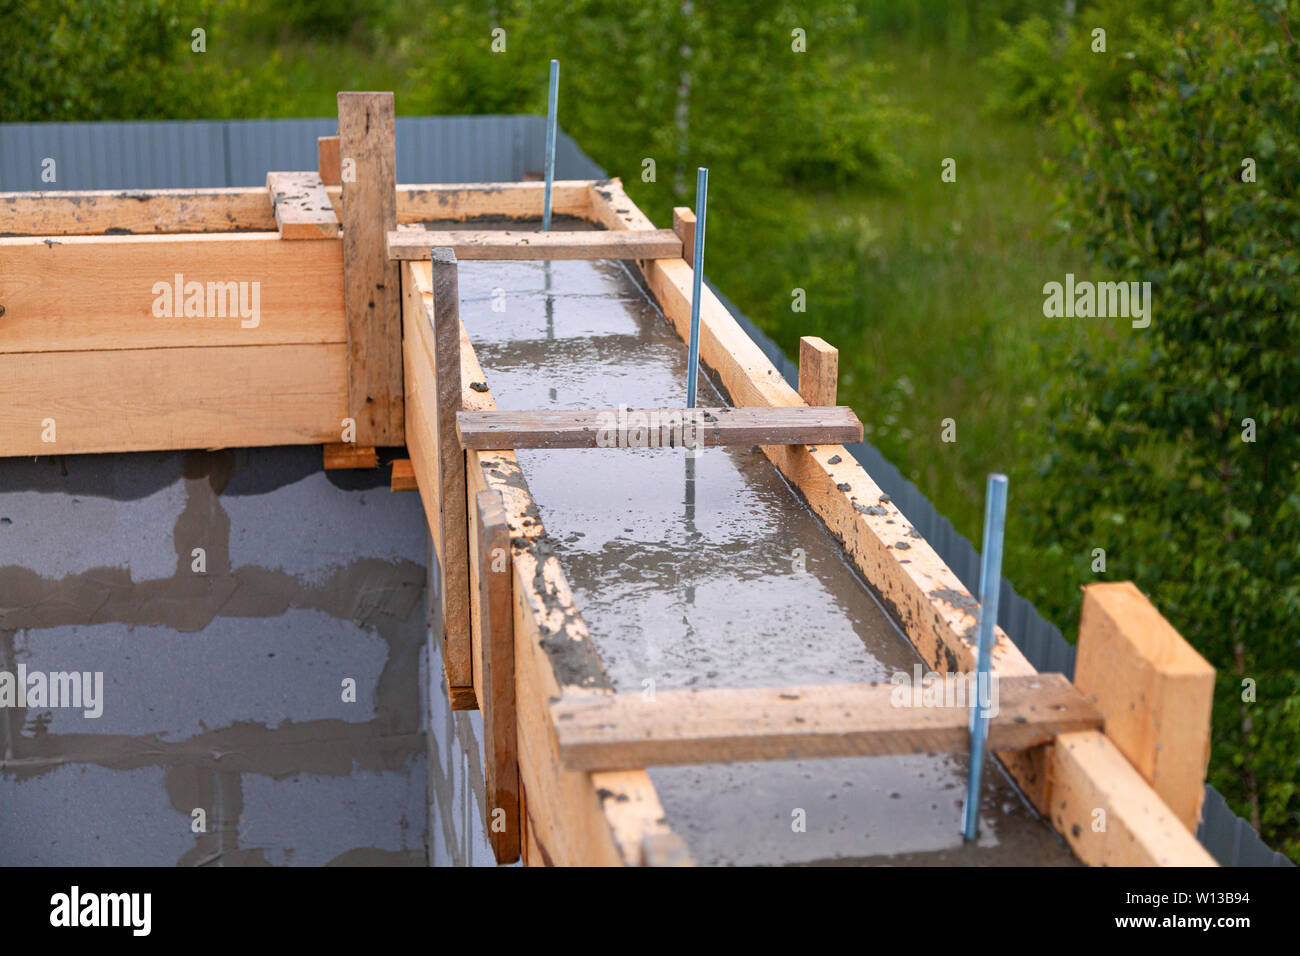 Foundation site of new house, building, details and reinforcements with steel bars Stock Photo